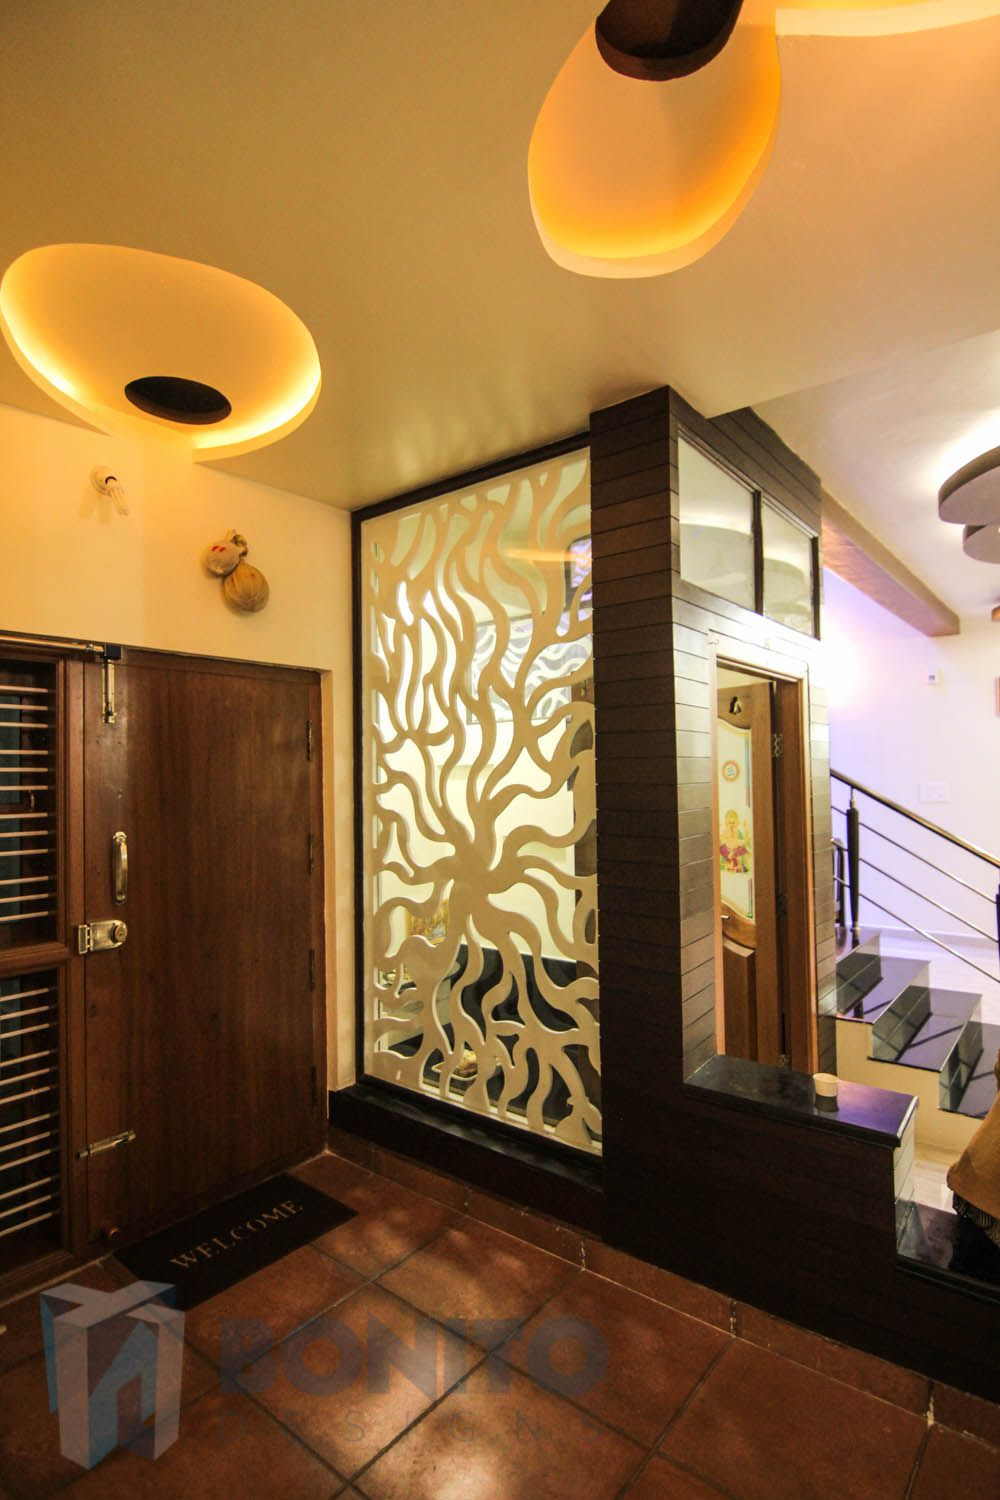 Pooja Room Designs In Living Room Pin By Jag On Entrance Pinterest Ceiling Design Entrance And